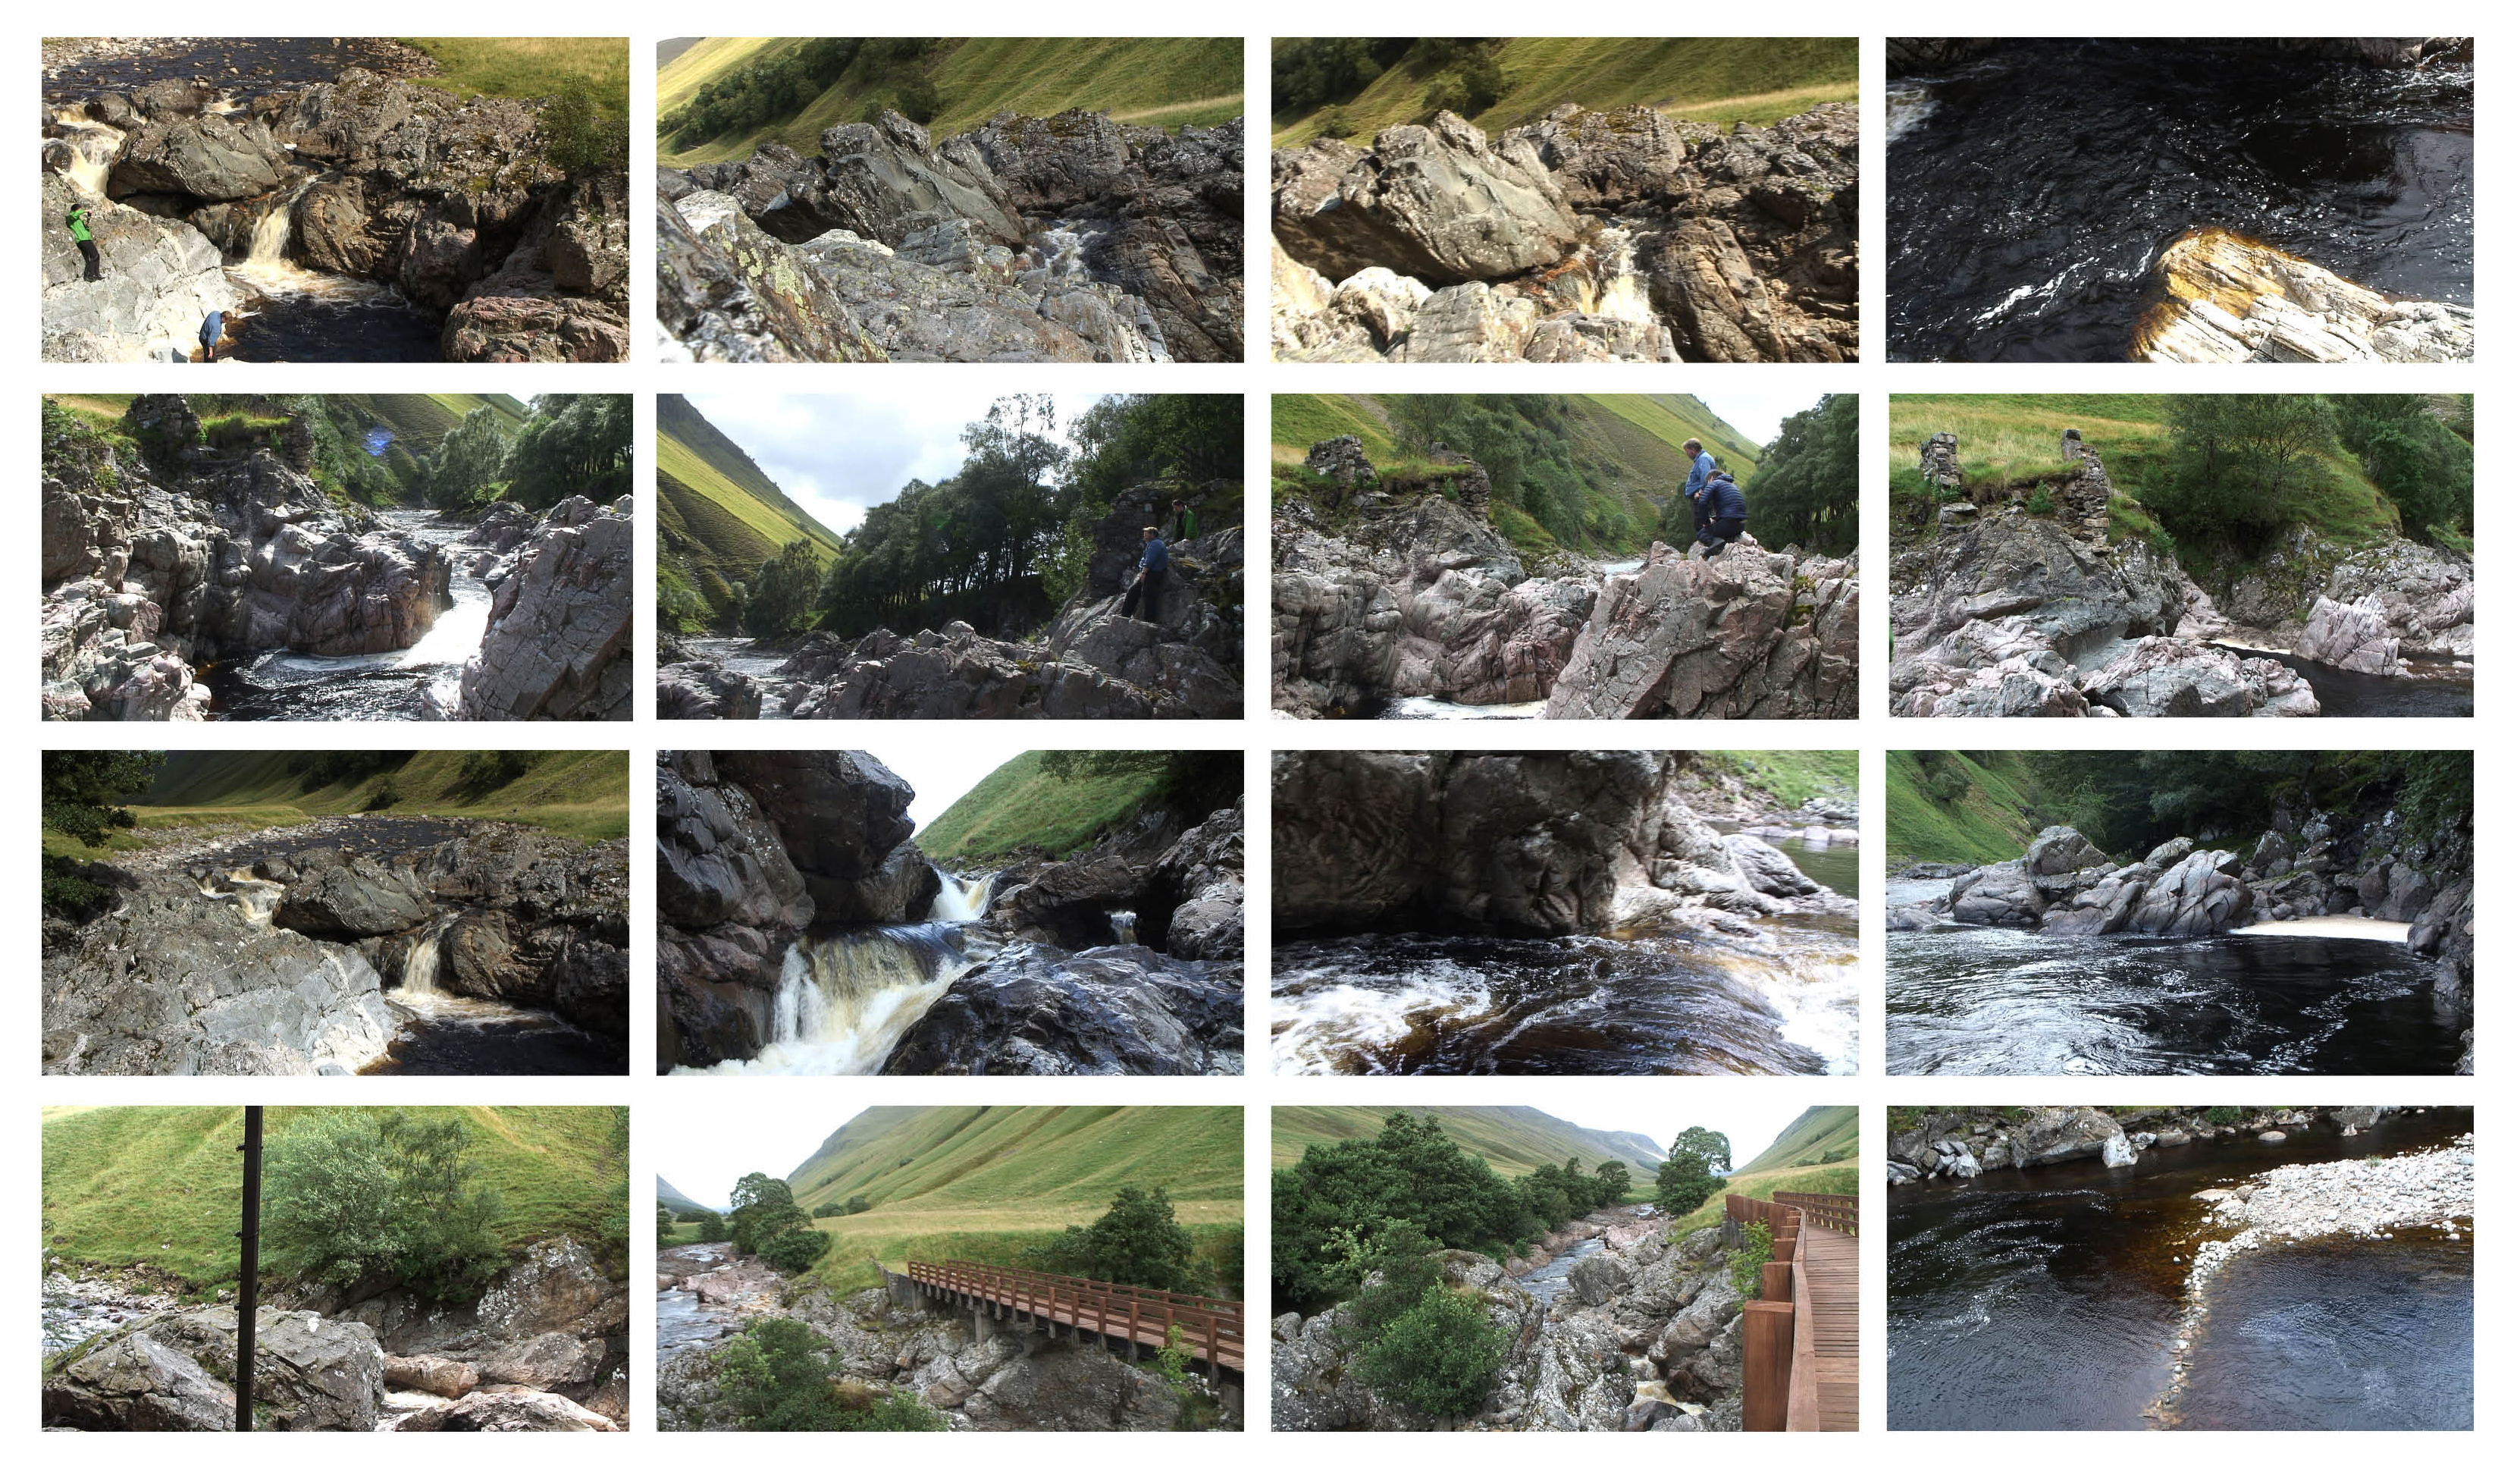 Black Bridge to Rapids to Shepherds' Bridge, beavers, wrought iron, brown trout, salmon leaps. Copyright Victoria Bernie